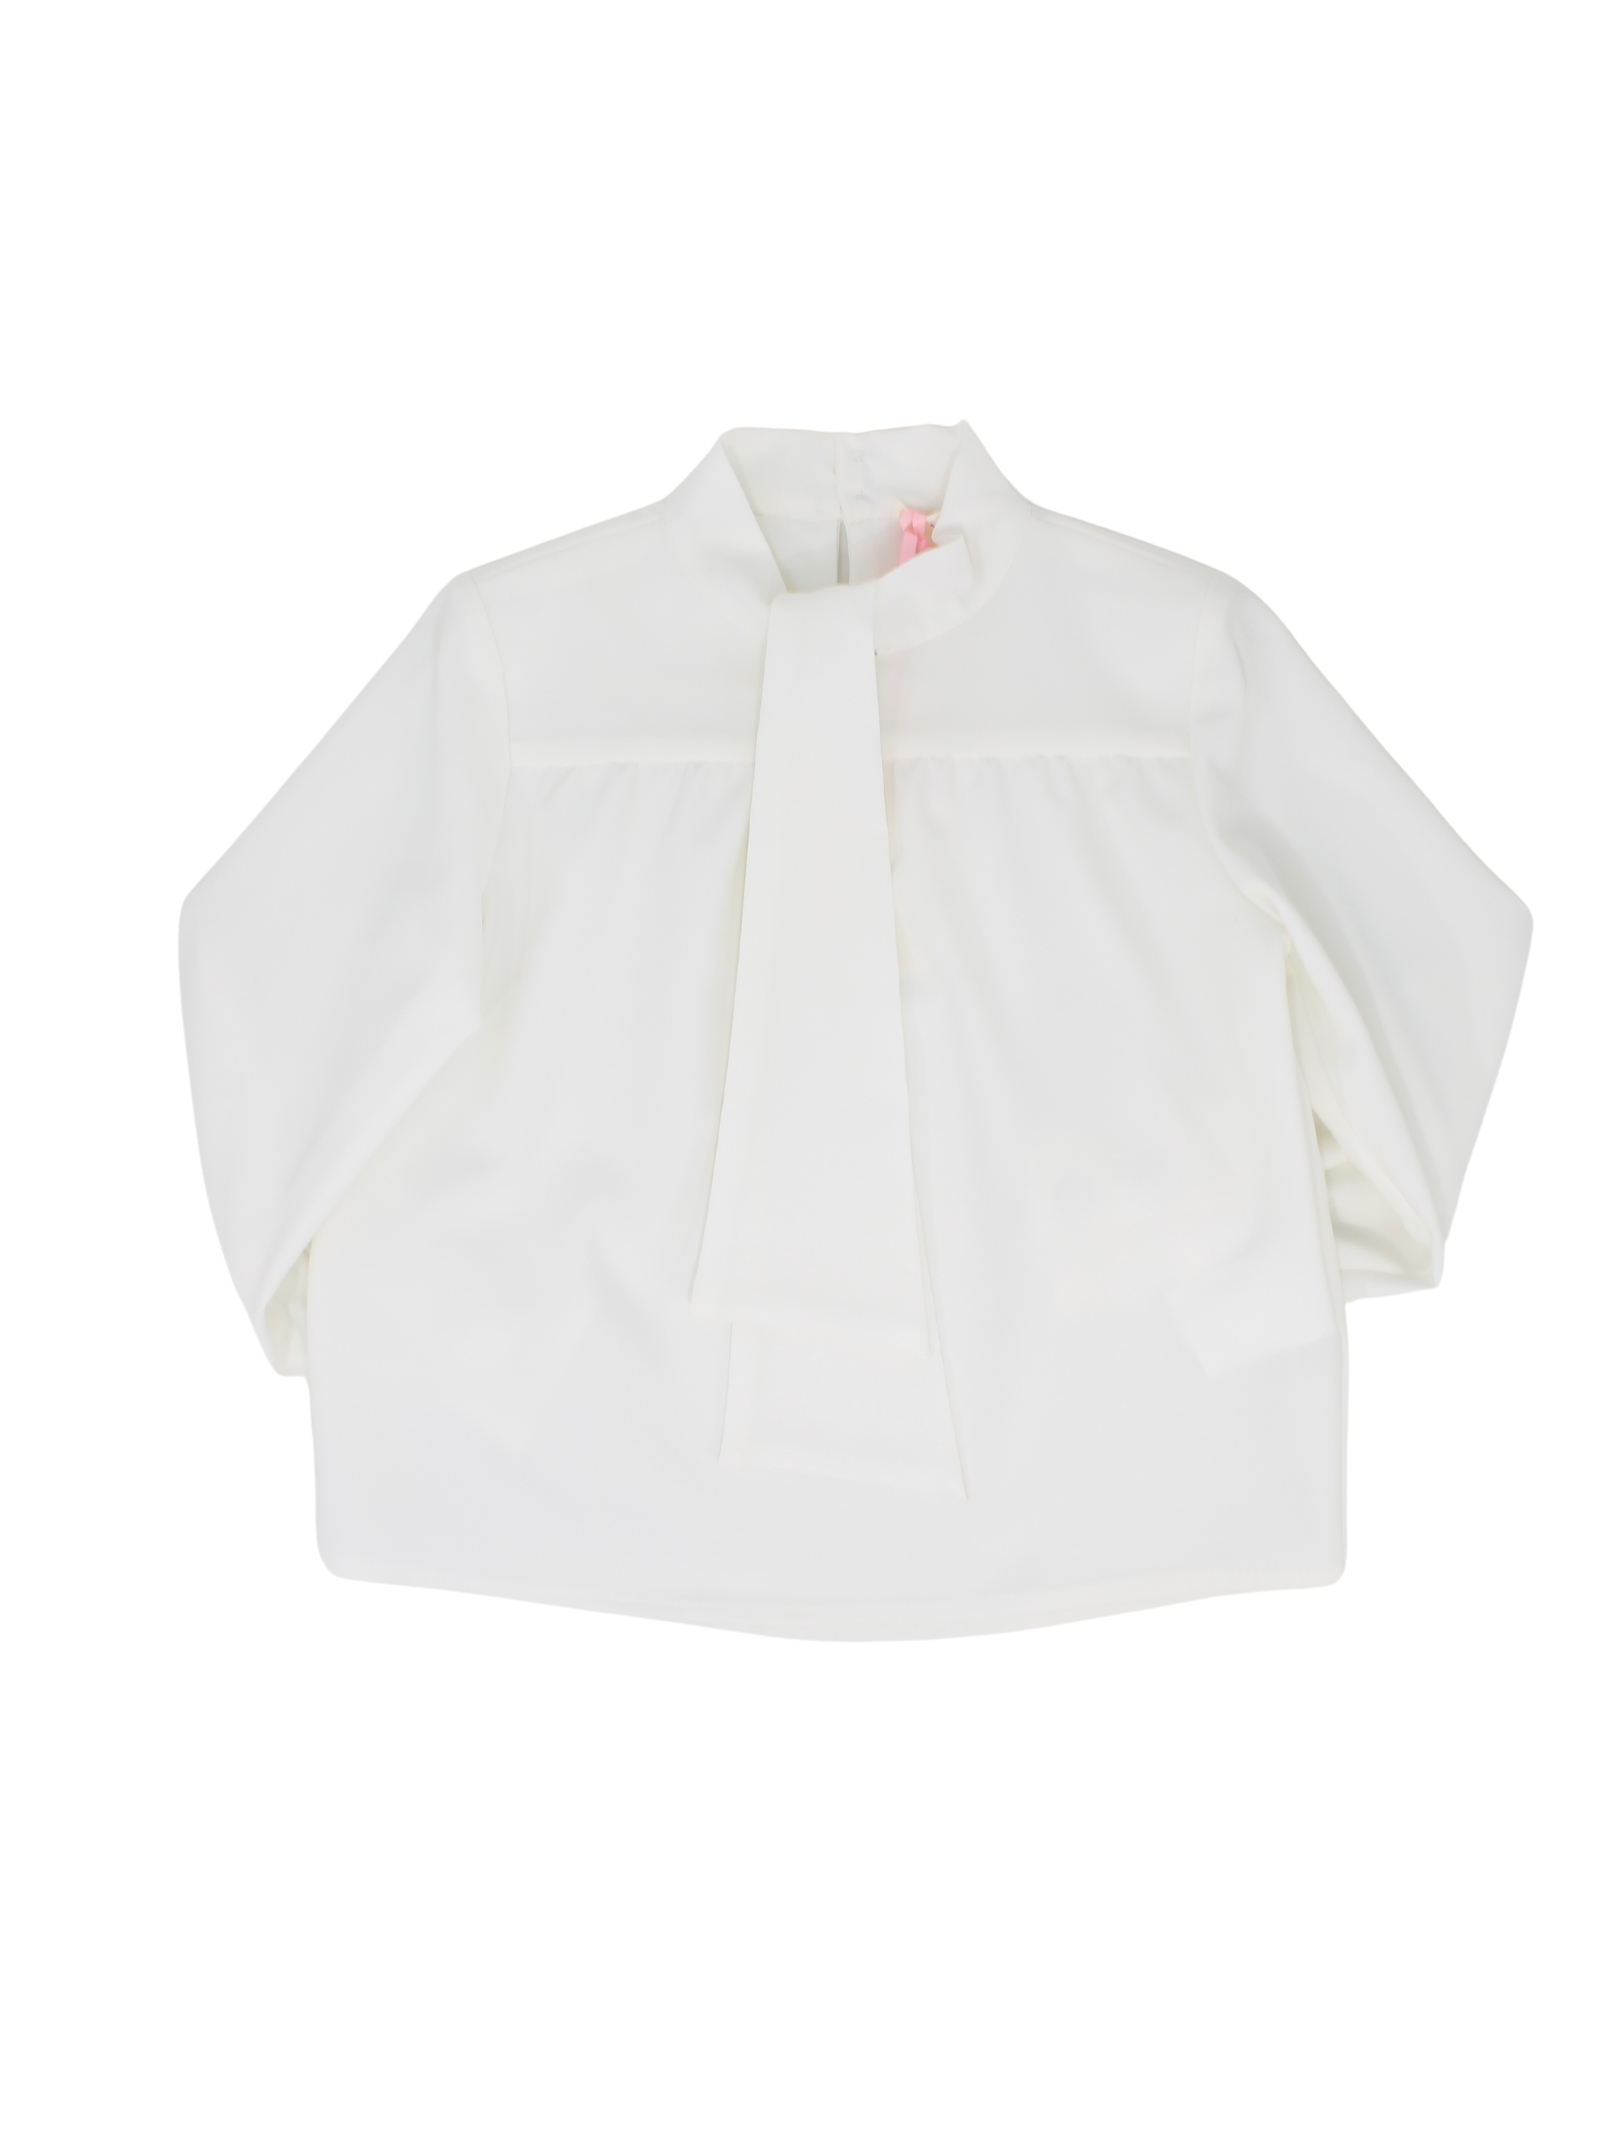 Shirt with Bow for Girls VICOLO KIDS |  | 3141C0604PANNA